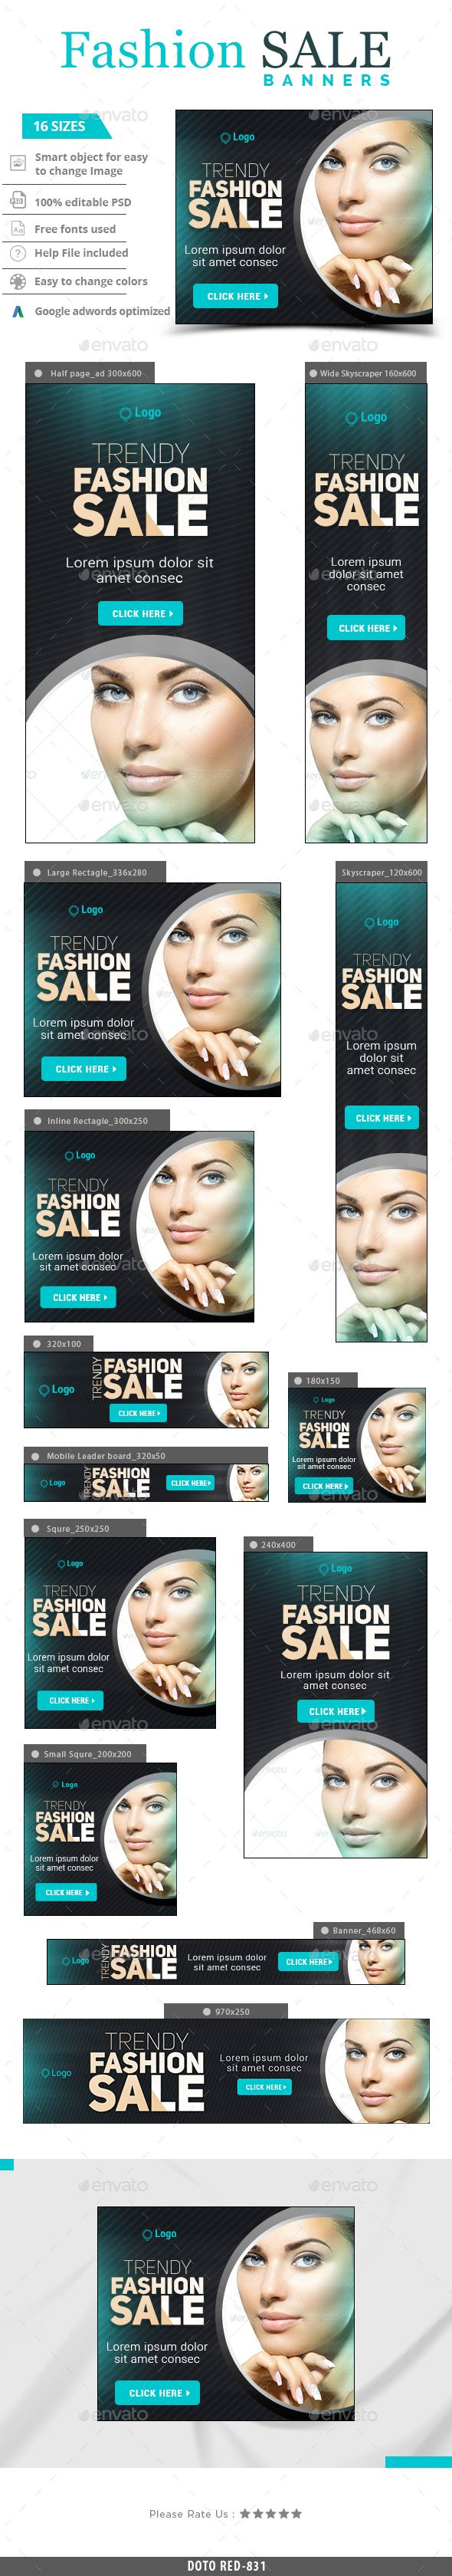 Trendy fashion Web Banners Template PSD #design Download: http://graphicriver.net/item/trendy-fashion-banners/13557330?ref=ksioks